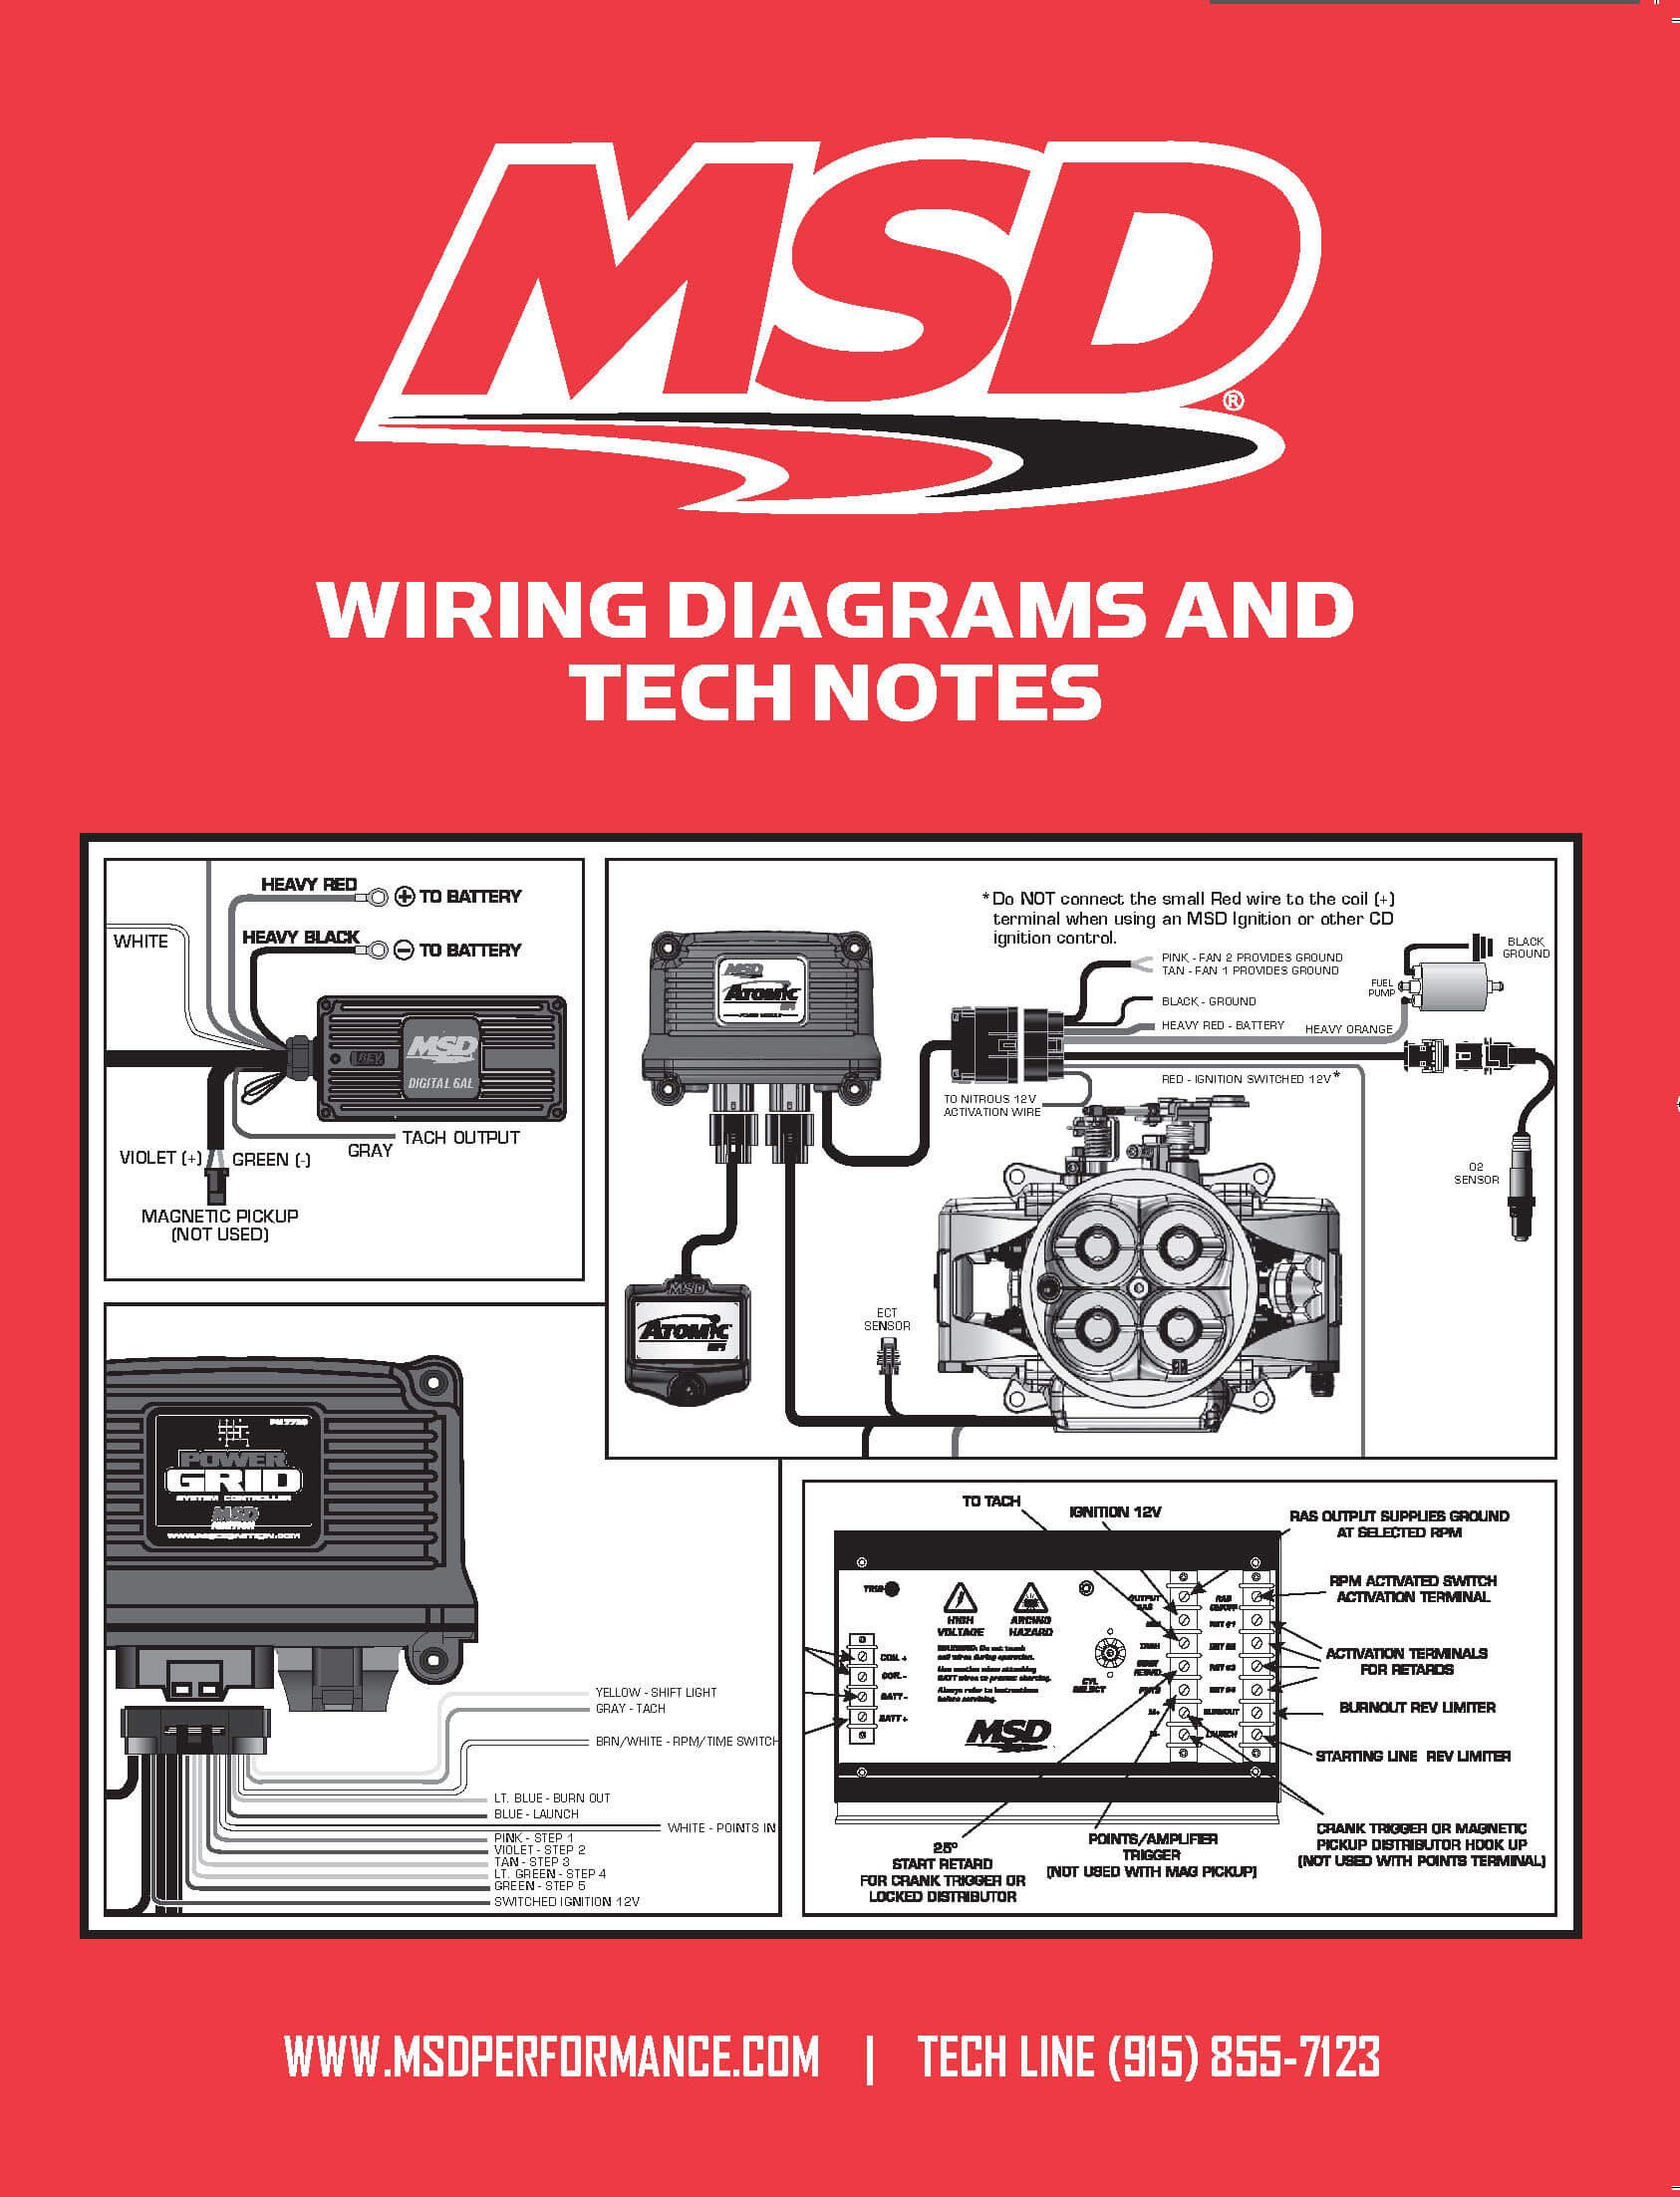 Wiring Diagrams And Tech Notes Diagram For Mallory Distributor Free Download 9615 Image